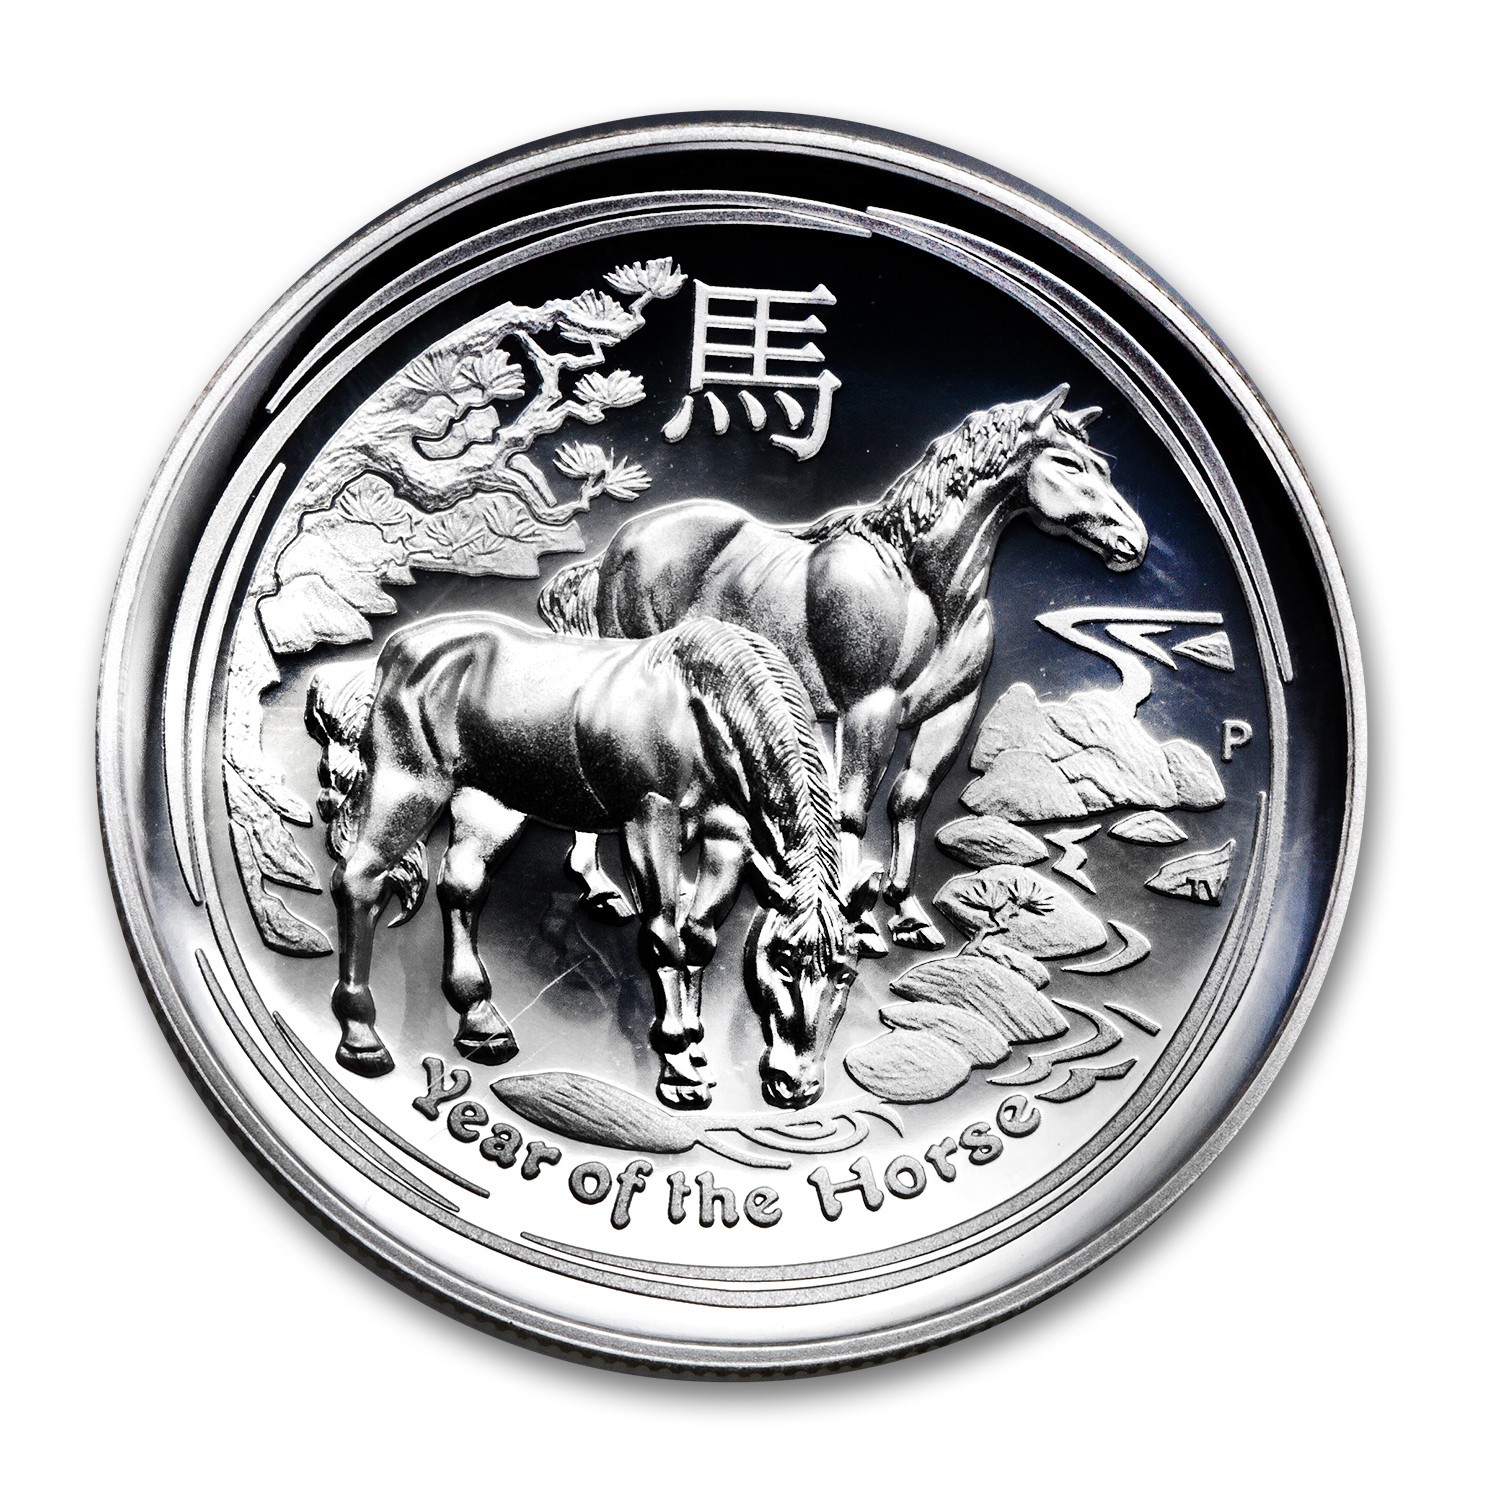 2014 1 oz Silver High Relief Horse Proof PF-70 UCAM NGC